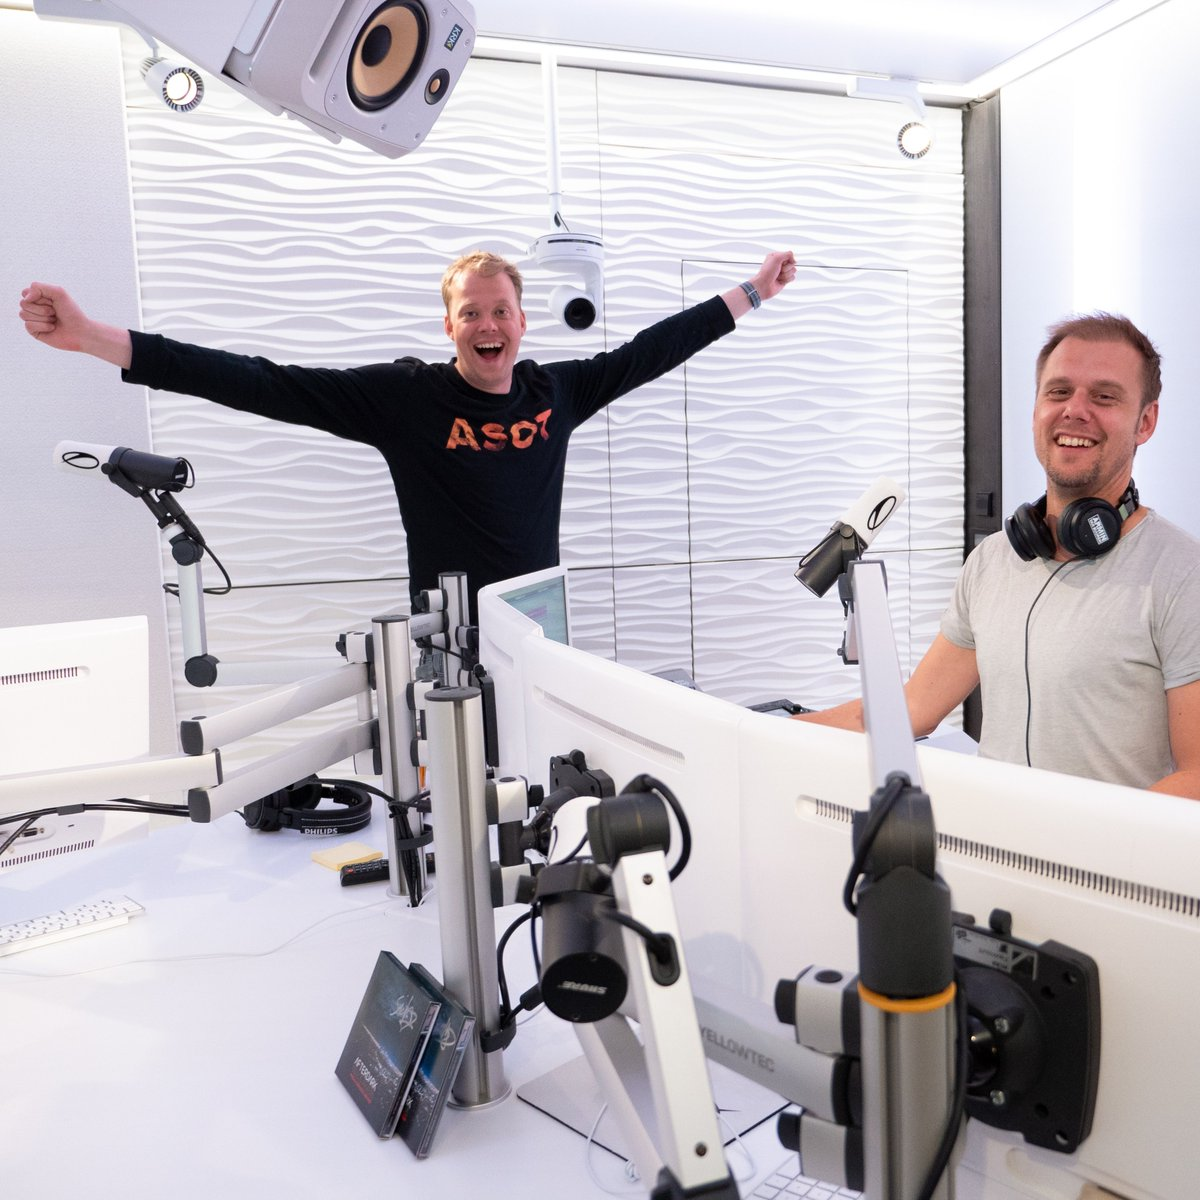 Find the #ASOT flame sweater @rubenderonde is wearing here on our online store! We've added a selection of limited edition collectors items from over the years to our shop, hit the link and pick something up today: https://t.co/iVSUieuEuq #Trance #ASOT #Merch https://t.co/dbAZVjm0wV